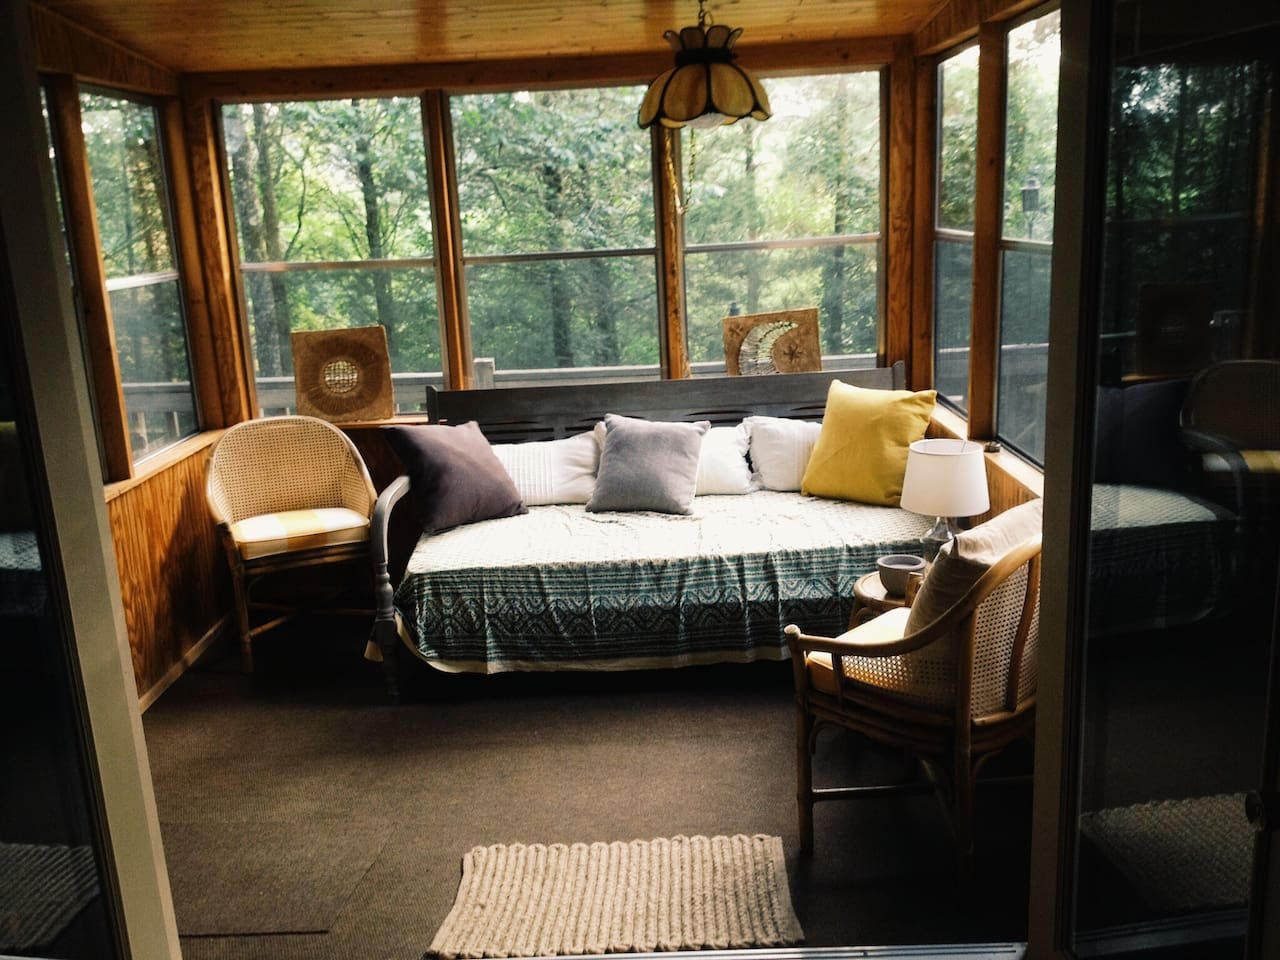 Glassed in sunporch can sleep one person on the day bed. Sun porch leads to two level deck with view of the river. Gas grill on deck.